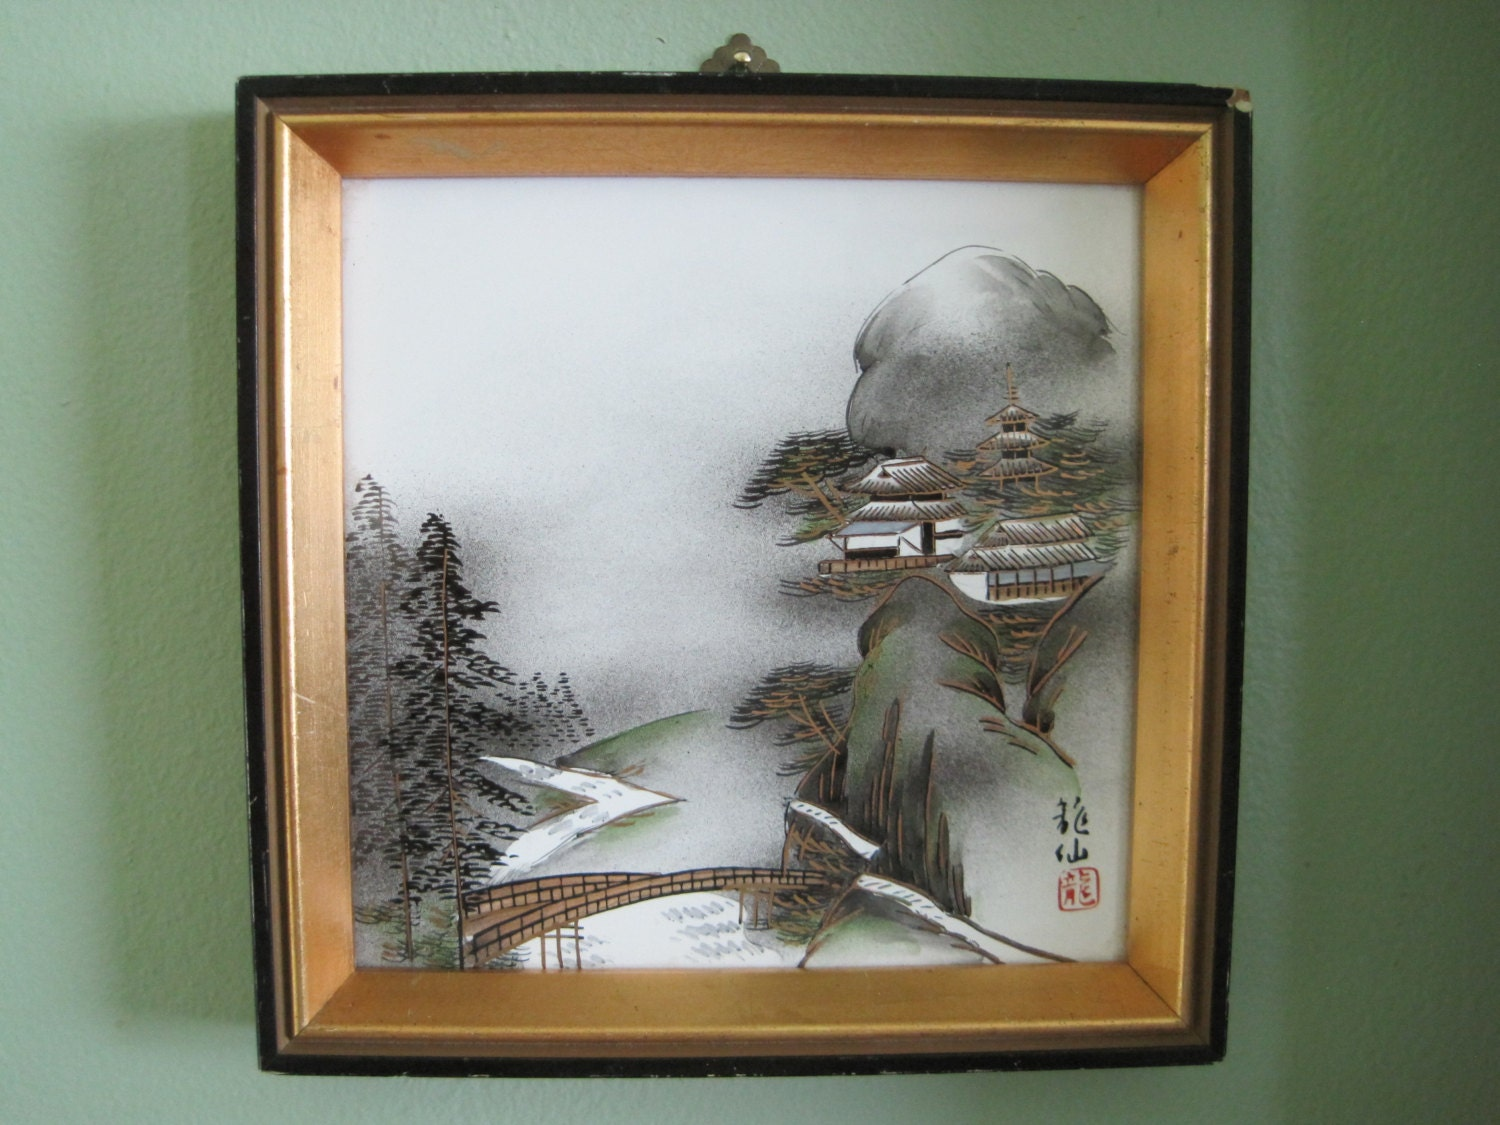 Asian wall art japanese painting framed on ceramic vintage for Asian wall art